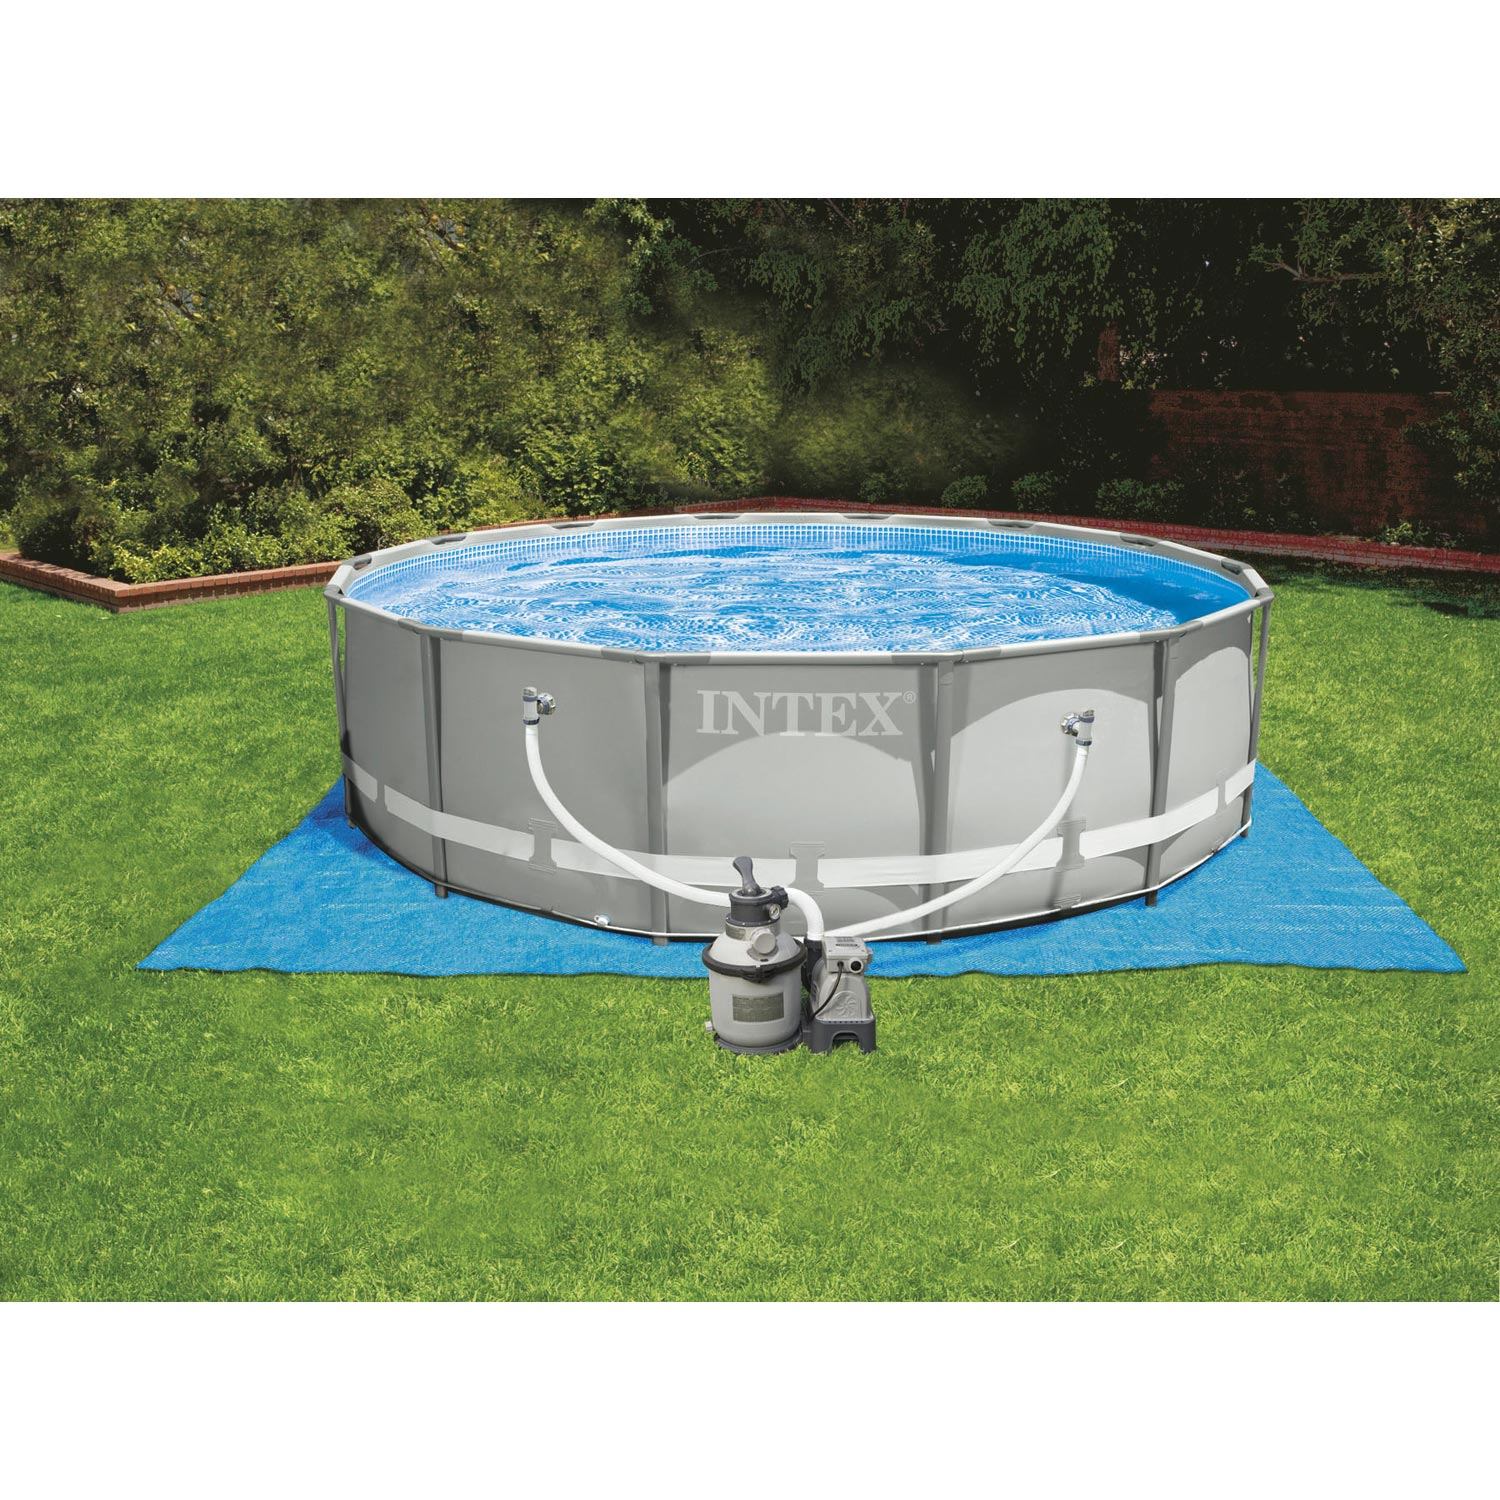 Piscine hors sol autoportante tubulaire ultra frame intex for Auchan piscine